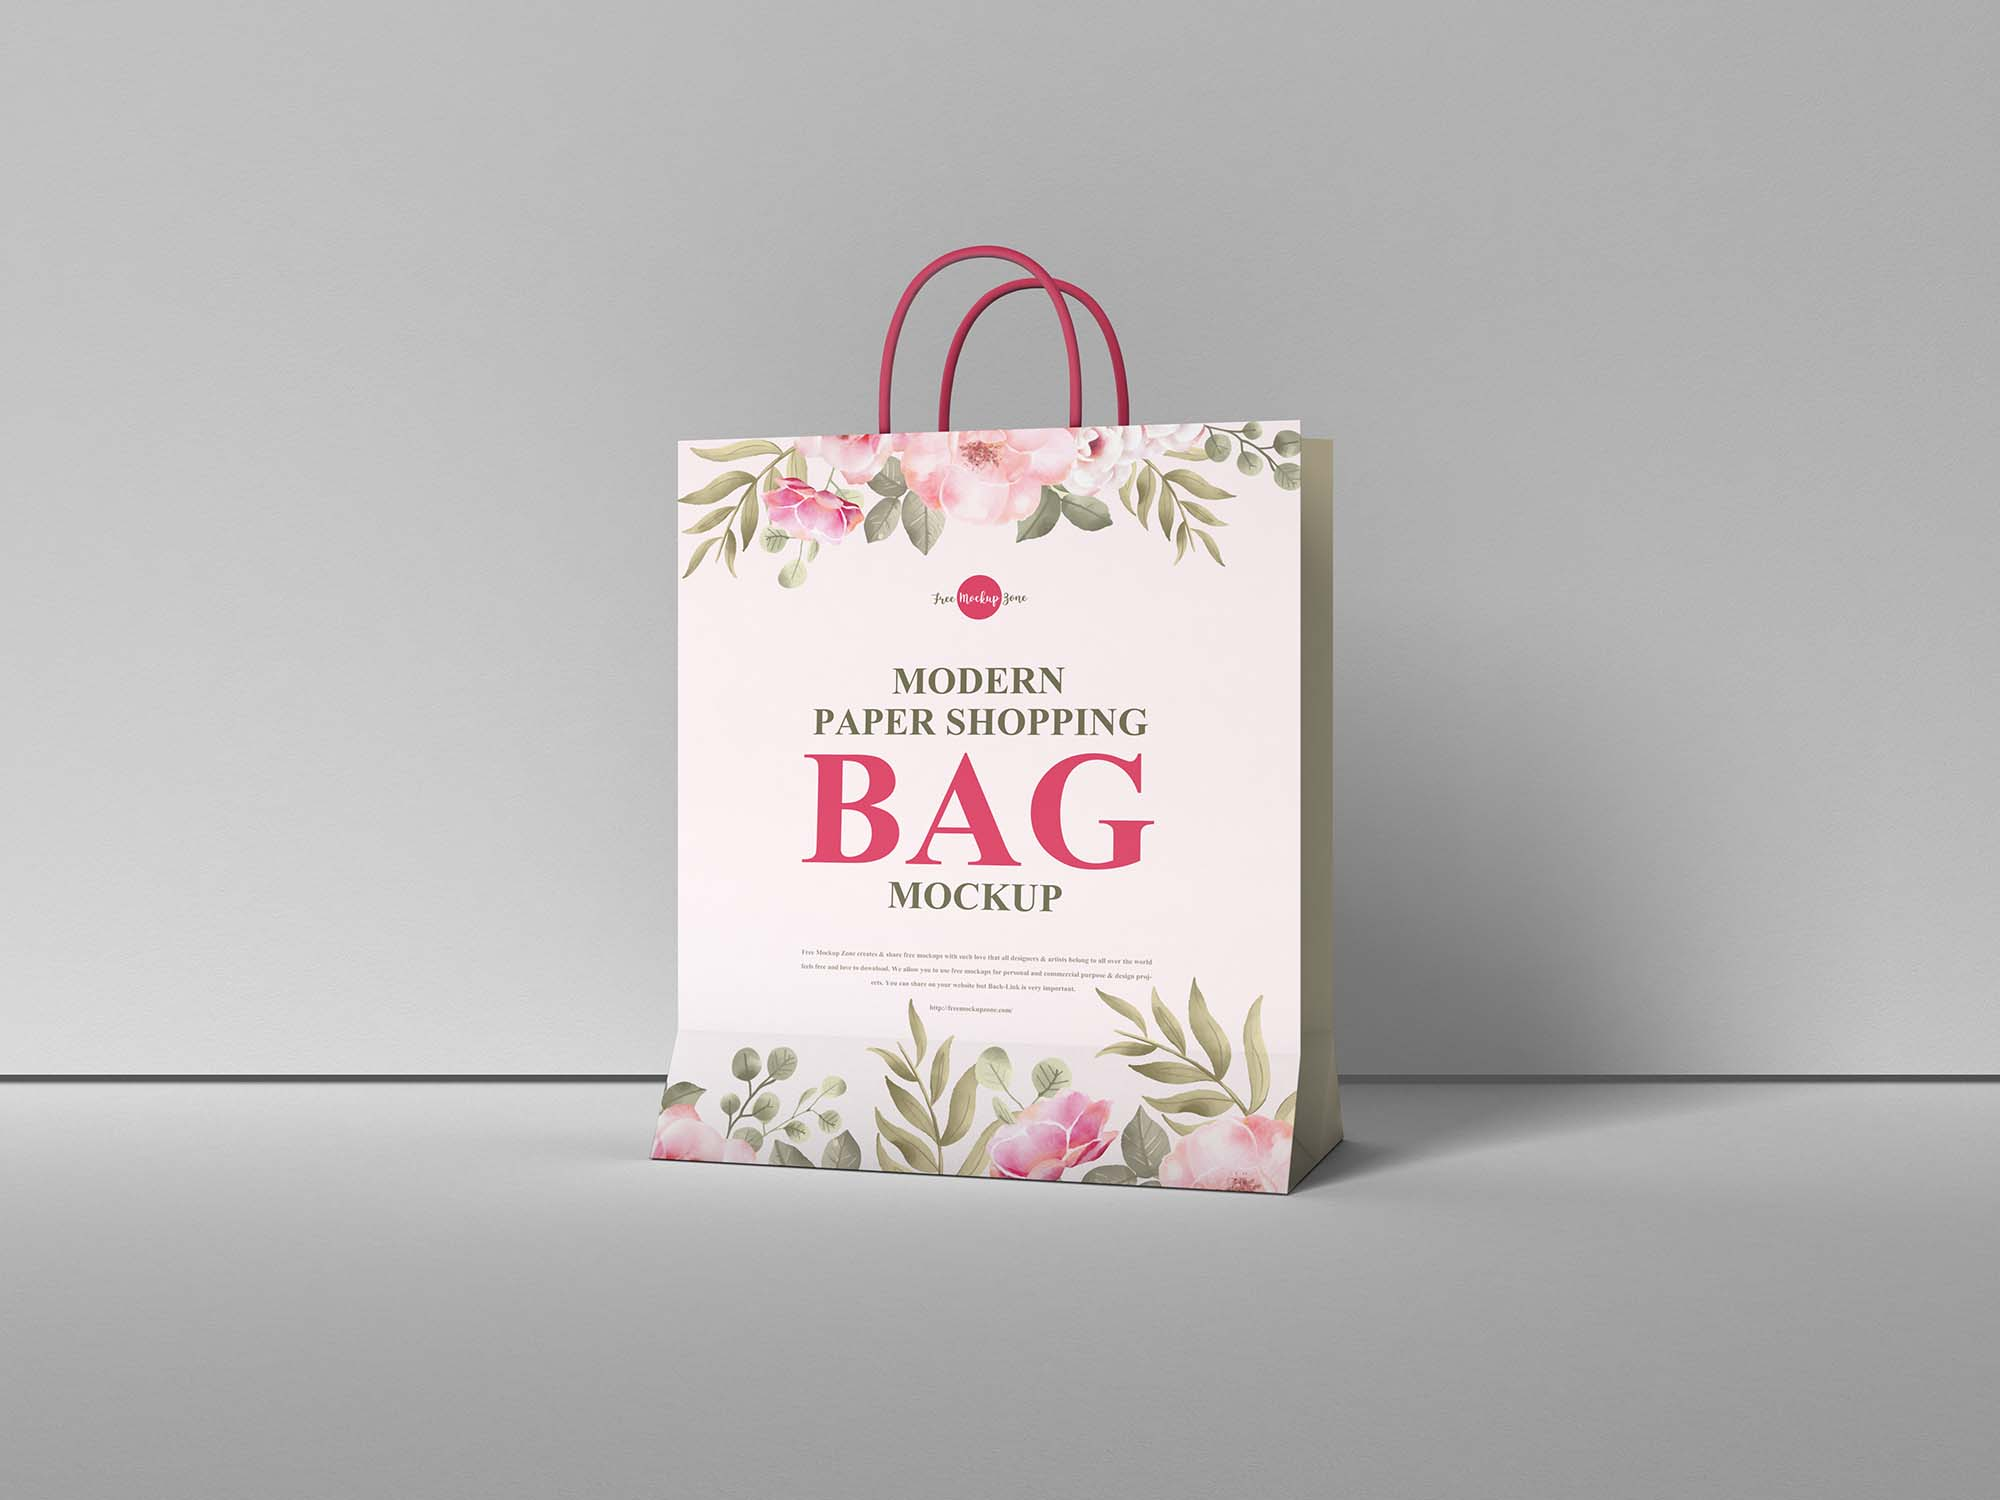 Modern Paper Shopping Bag Mockup